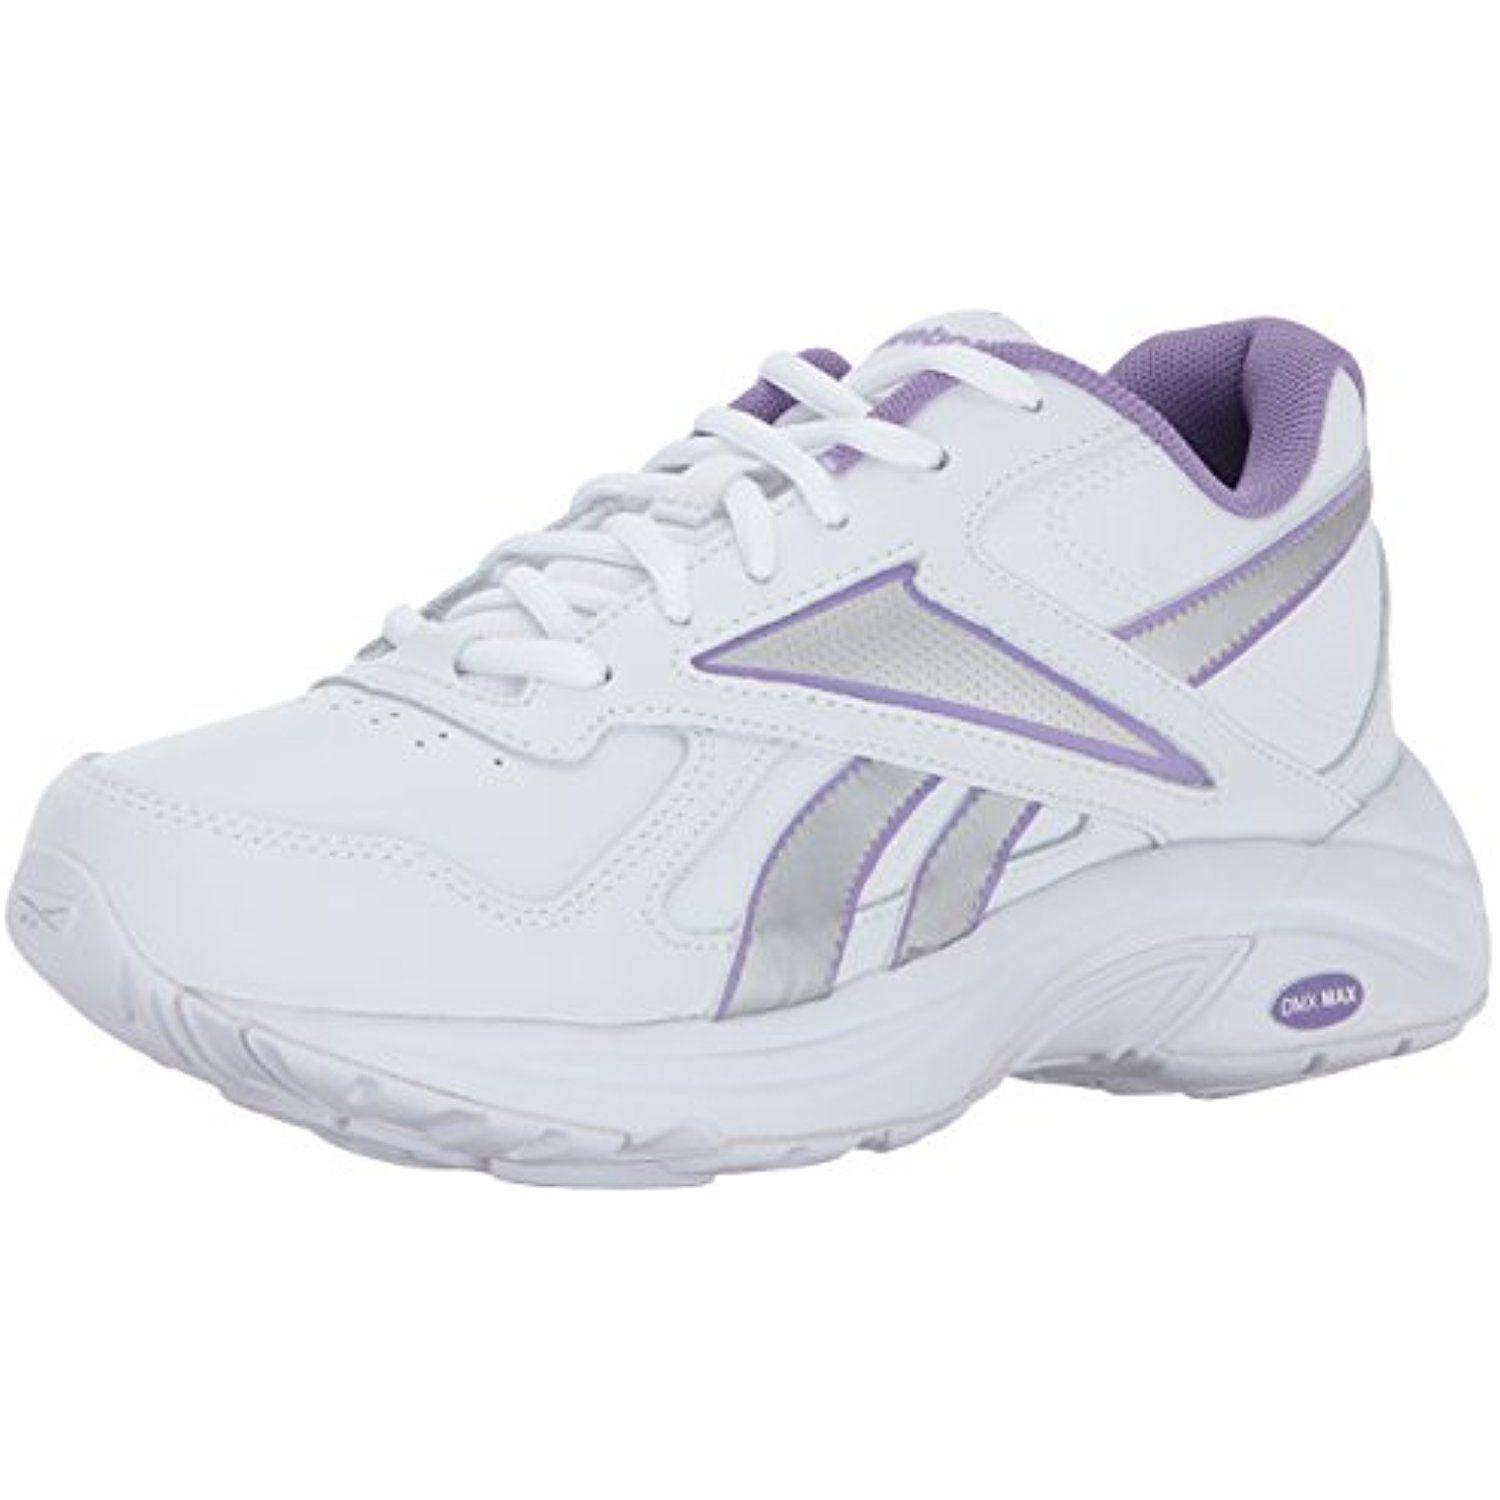 22ff533776 Women's Ultra V Dmx Max Walking Shoe >>> Visit the image link more ...